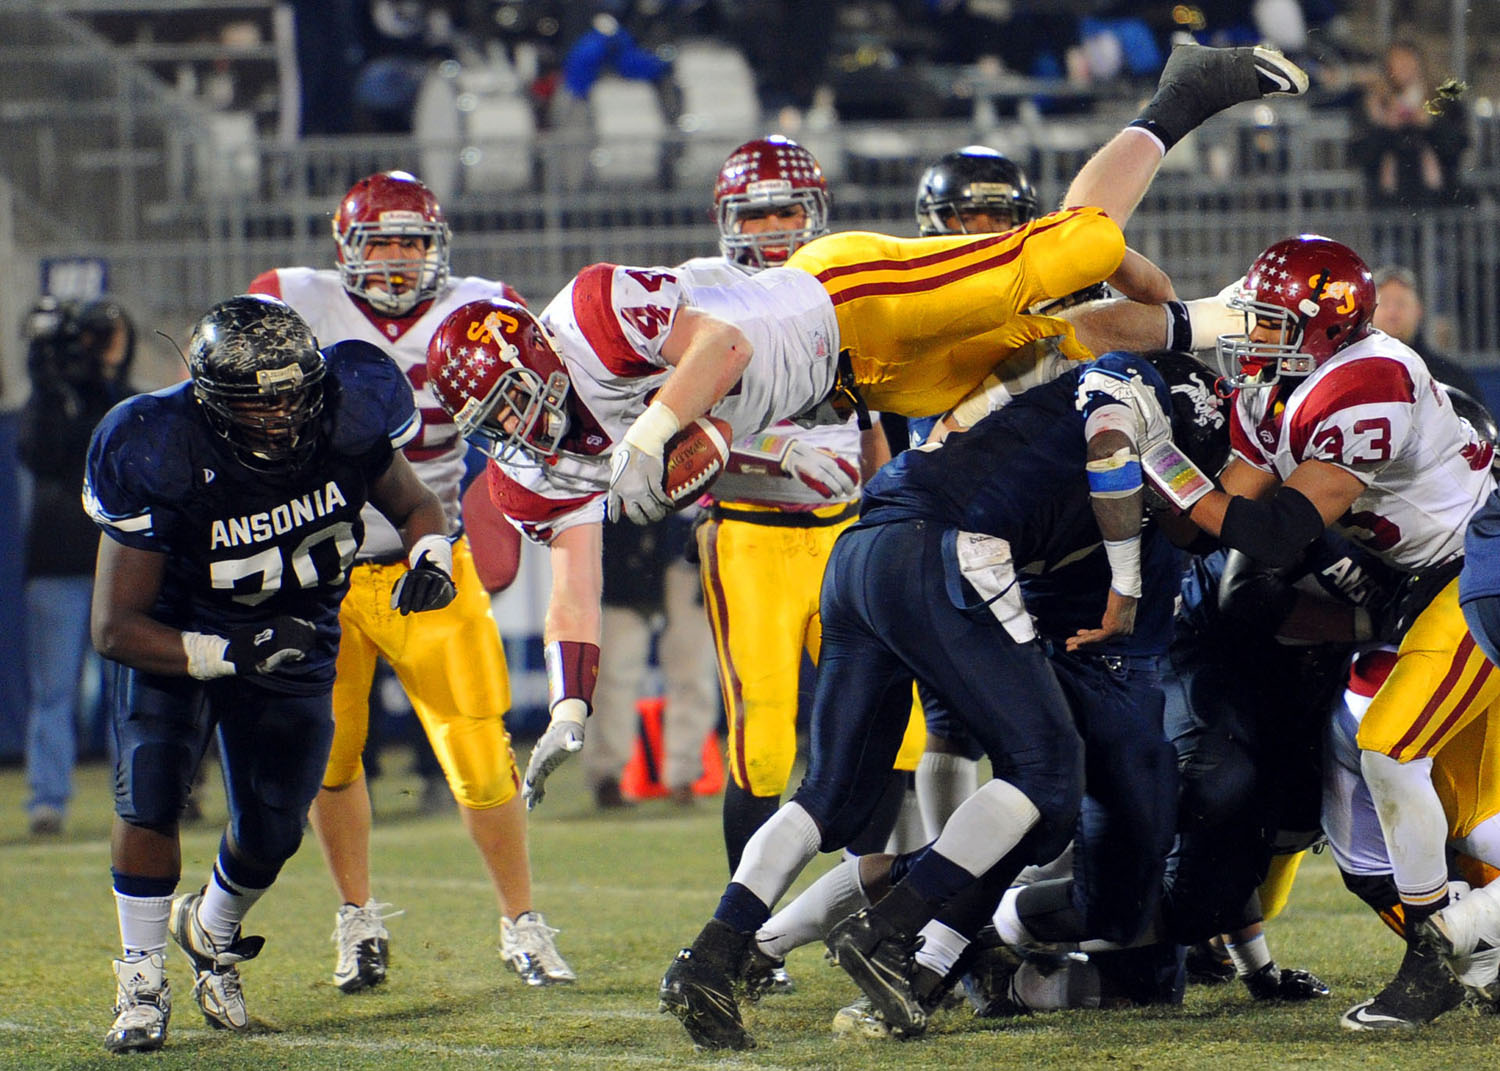 St. Joseph's Tyler Matakevich dives over Ansonia's defense to score a touchdown during the Class S State Football Championship game in East Hartford on December 11, 2010.